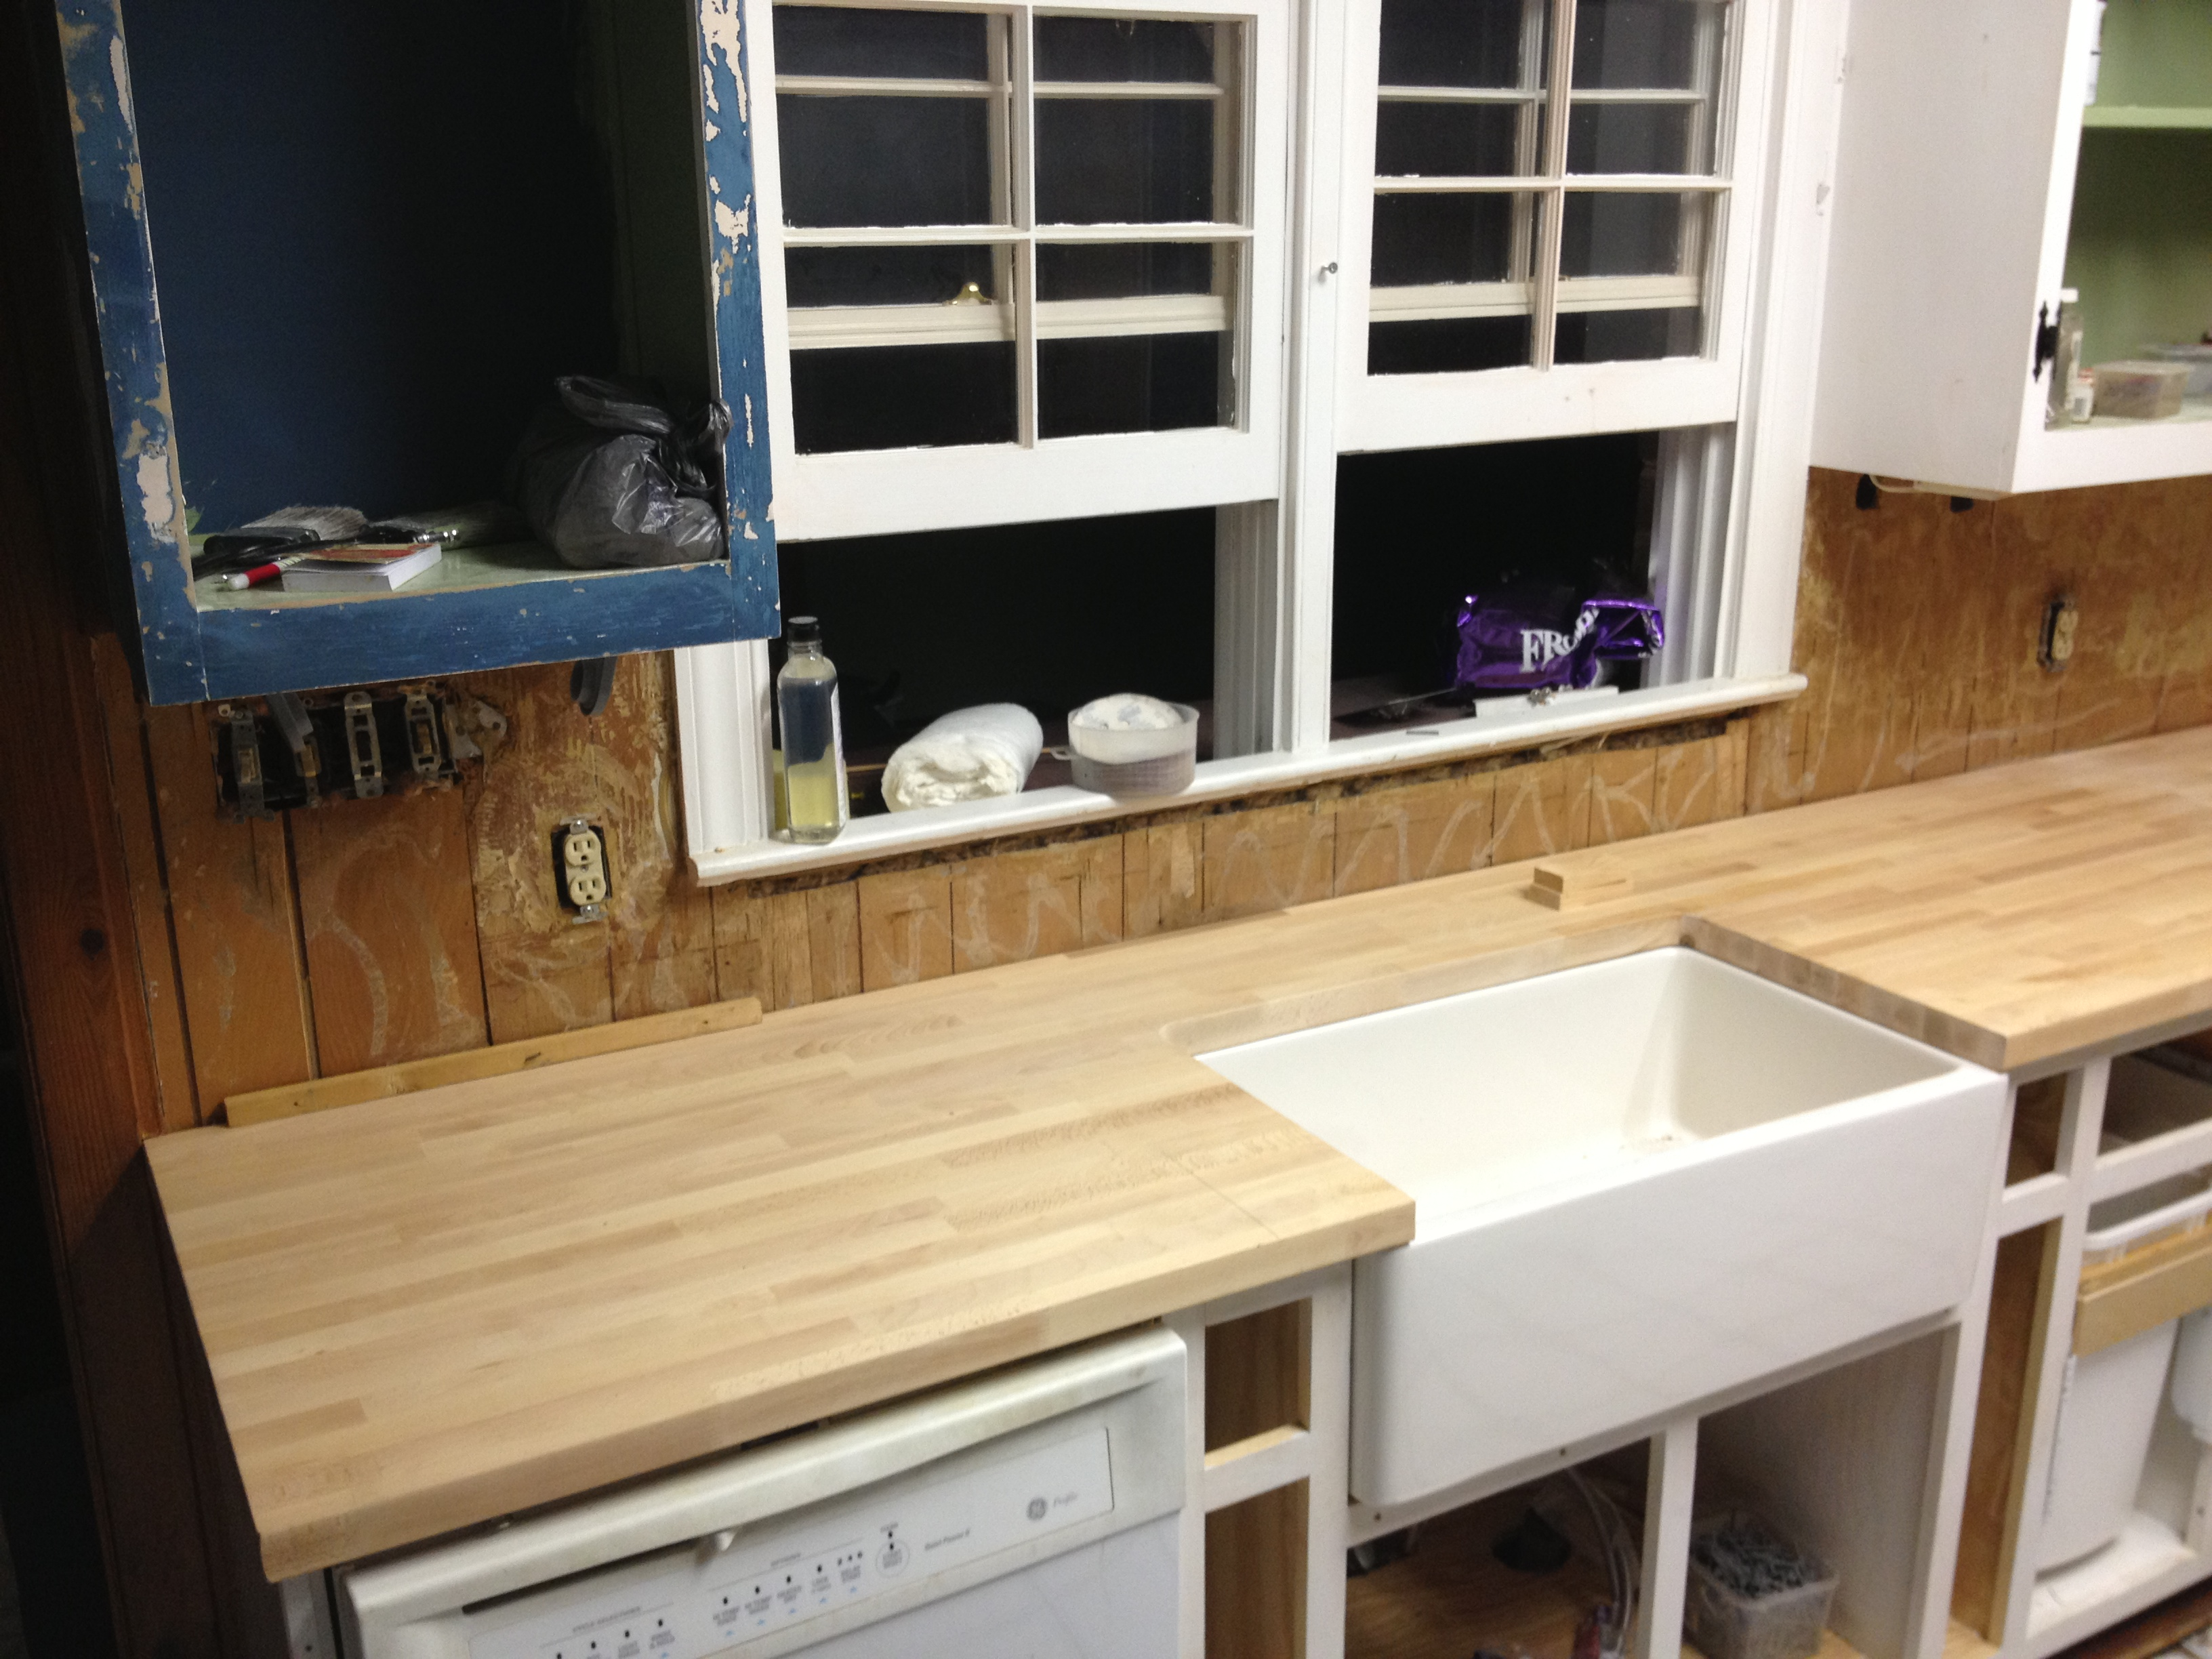 Installing butcher block countertops ikea best ikea for Ikea countertops review